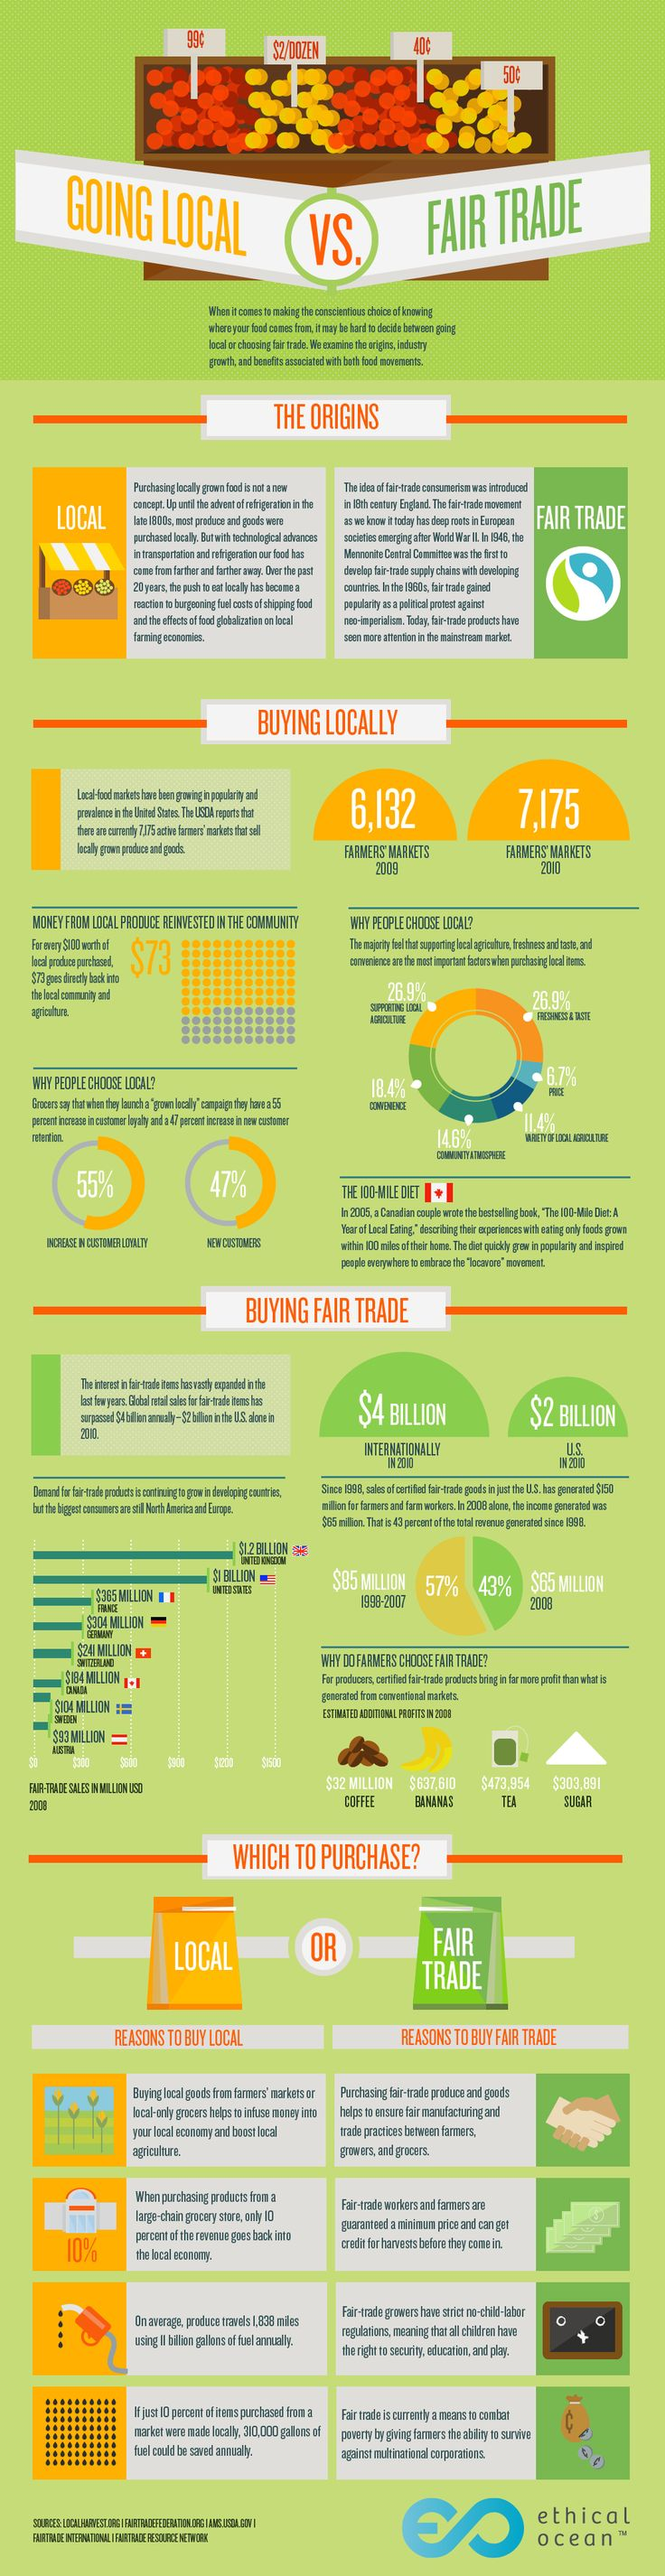 Local and Fair Trade facts. Know them well! #conscious